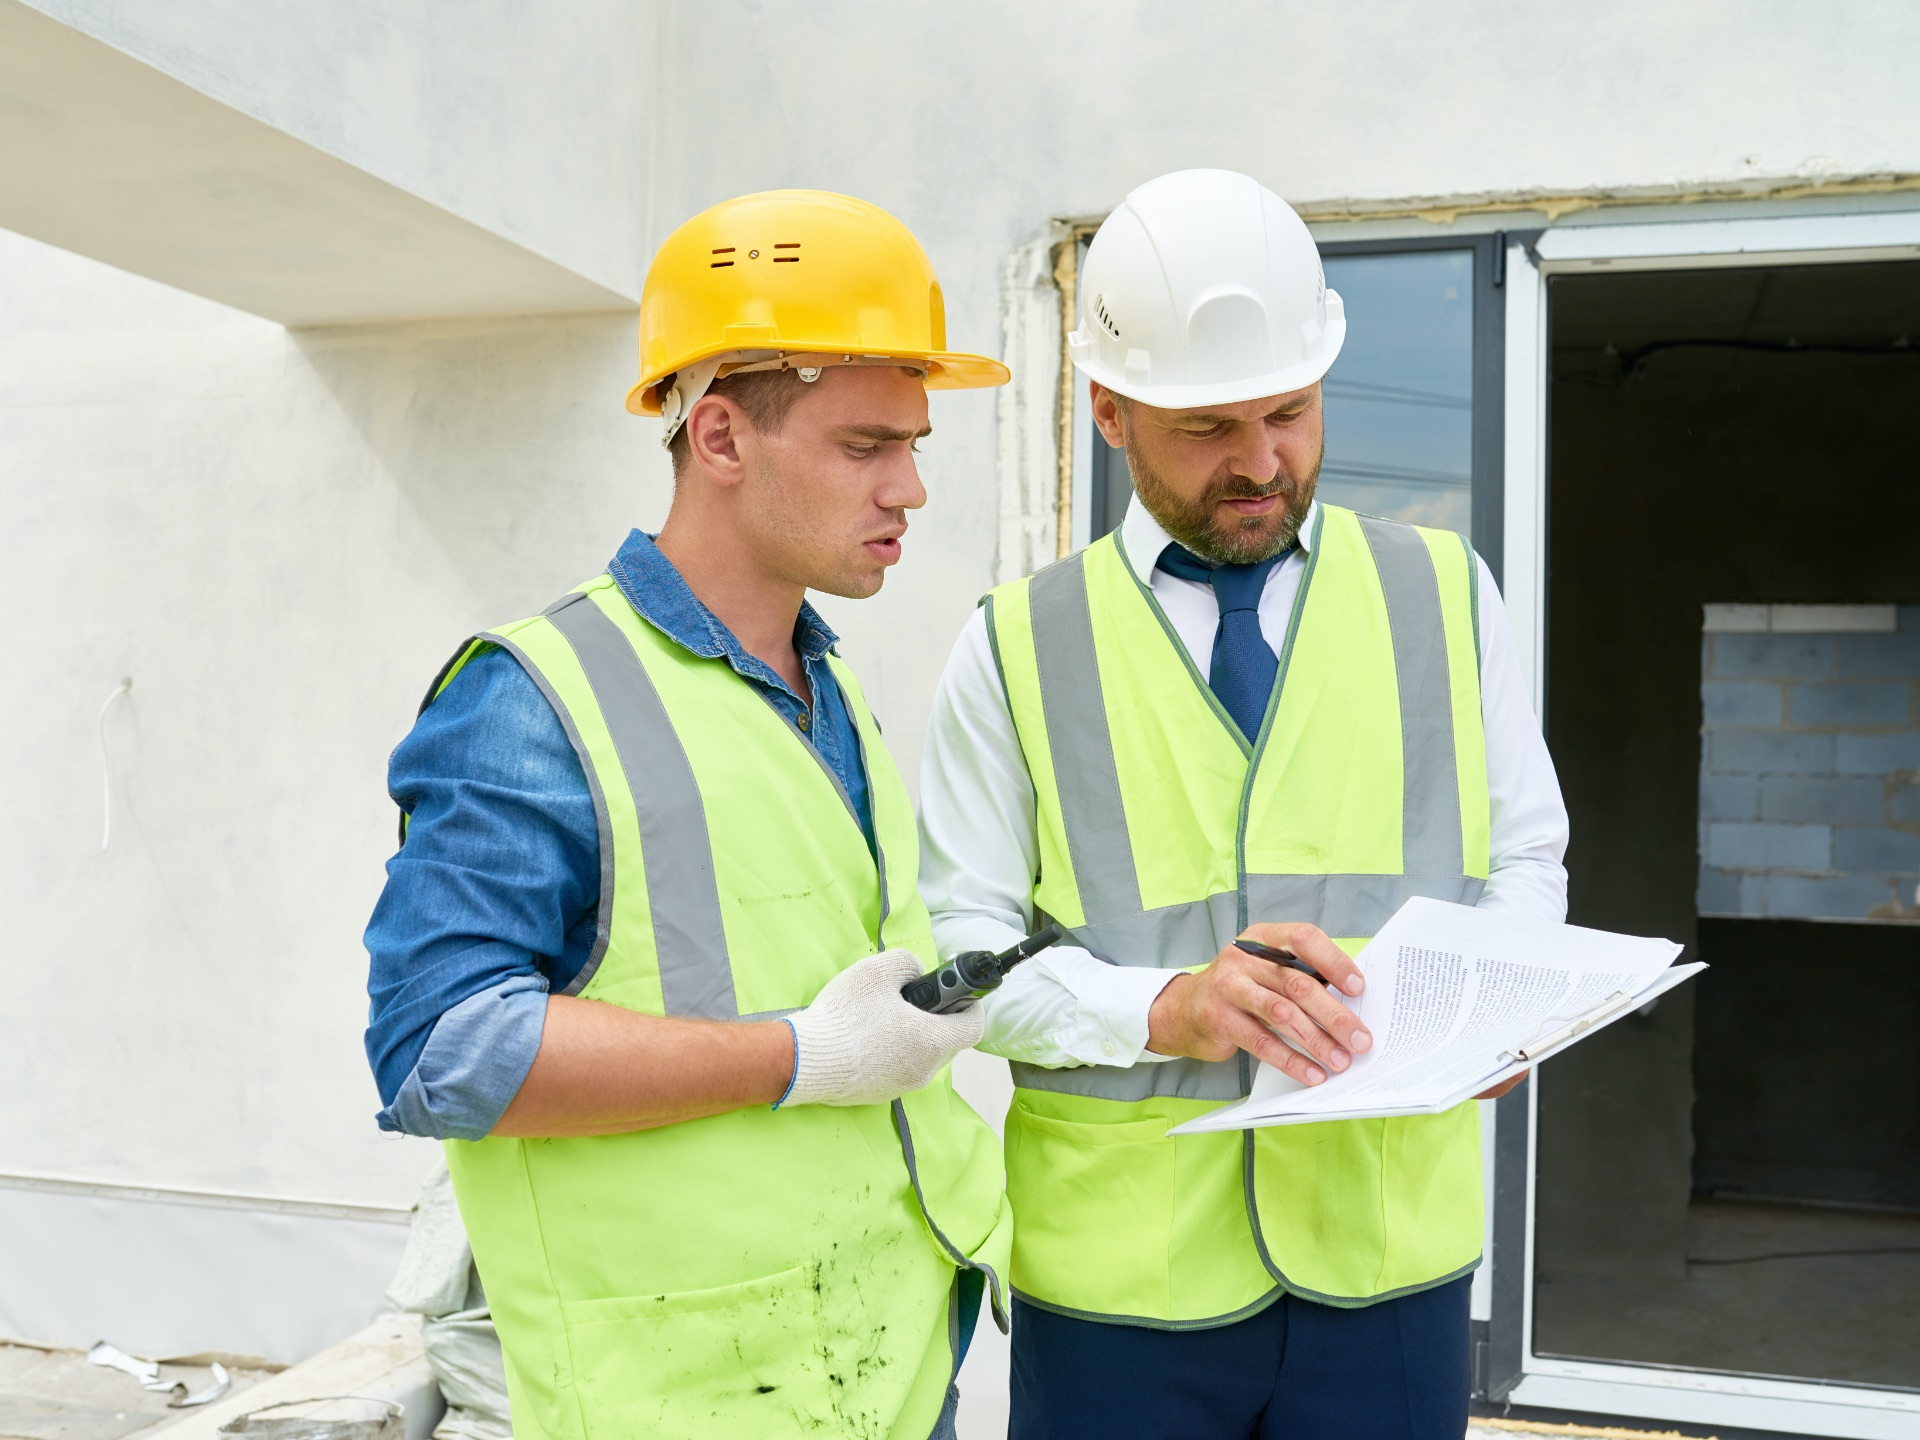 Health and Safety Training Courses in the Midlands